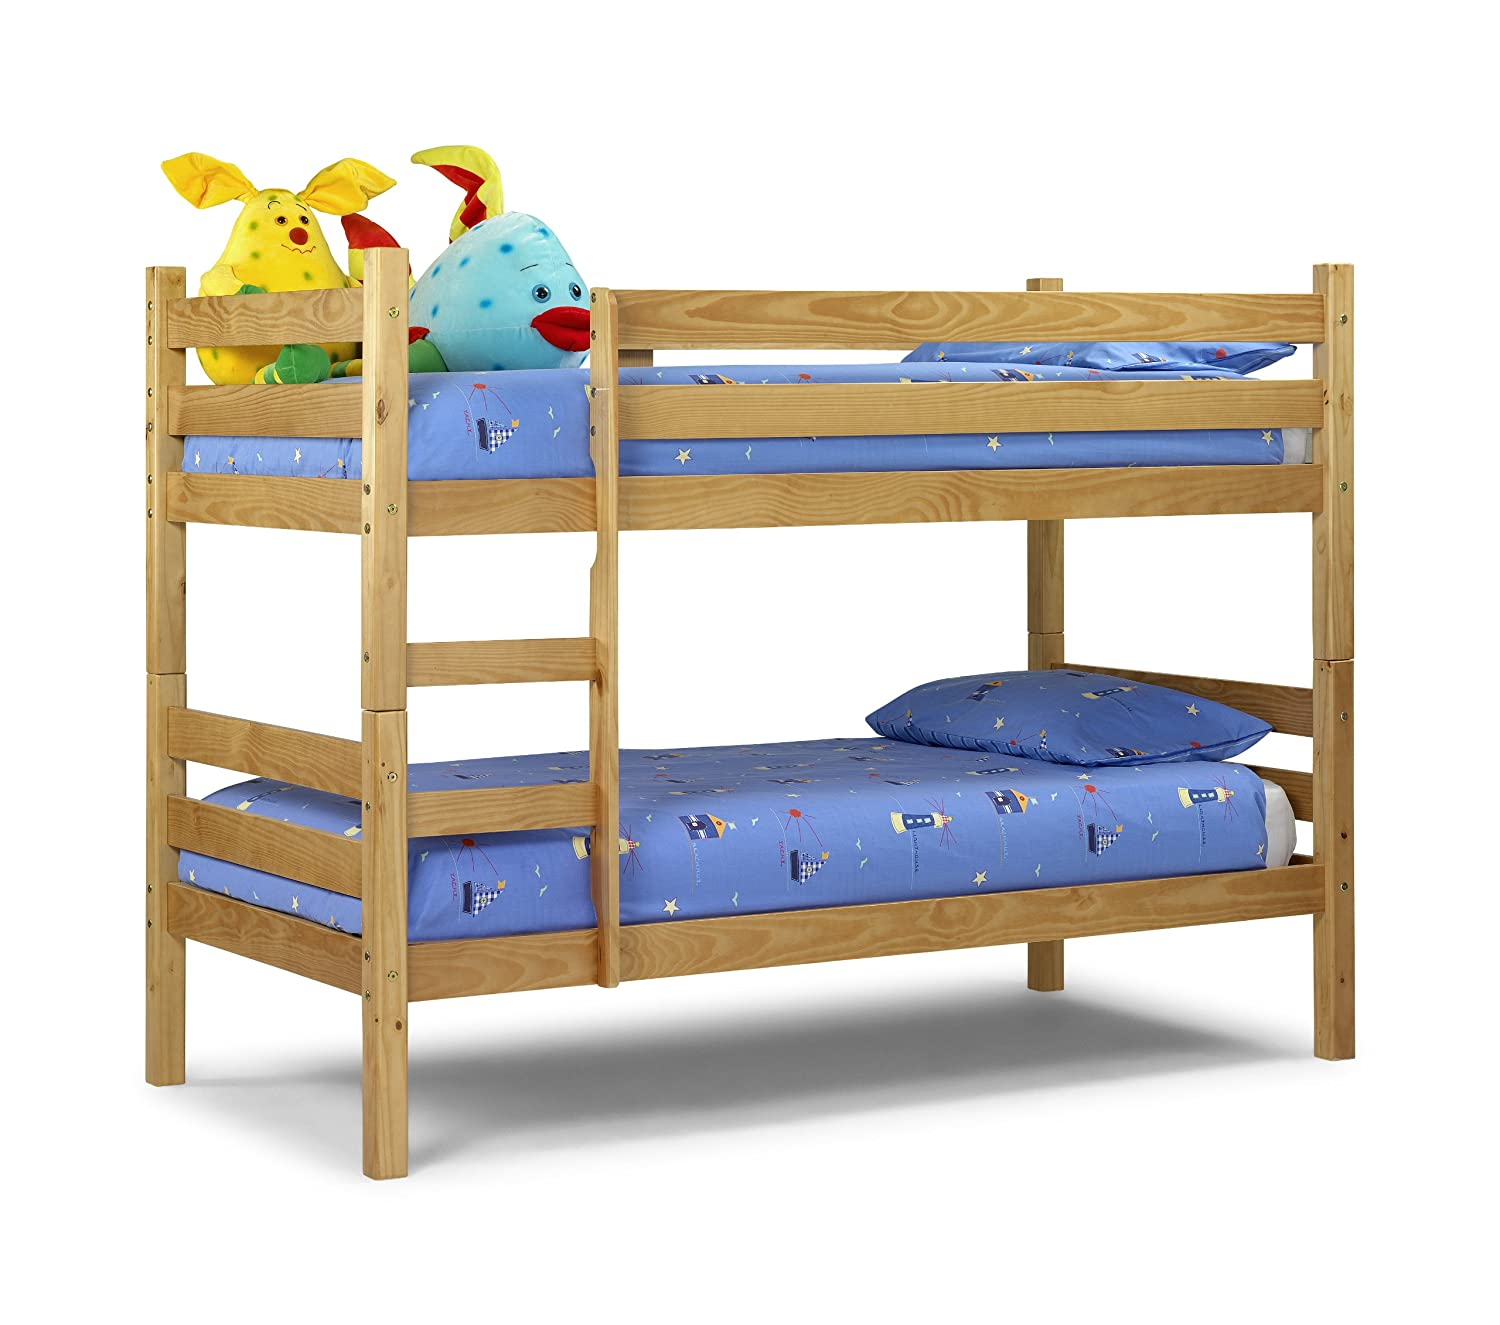 mattress nursery triple pdp sleeper uk wayfair with co beds viv bunk children aaron reviews rae bed